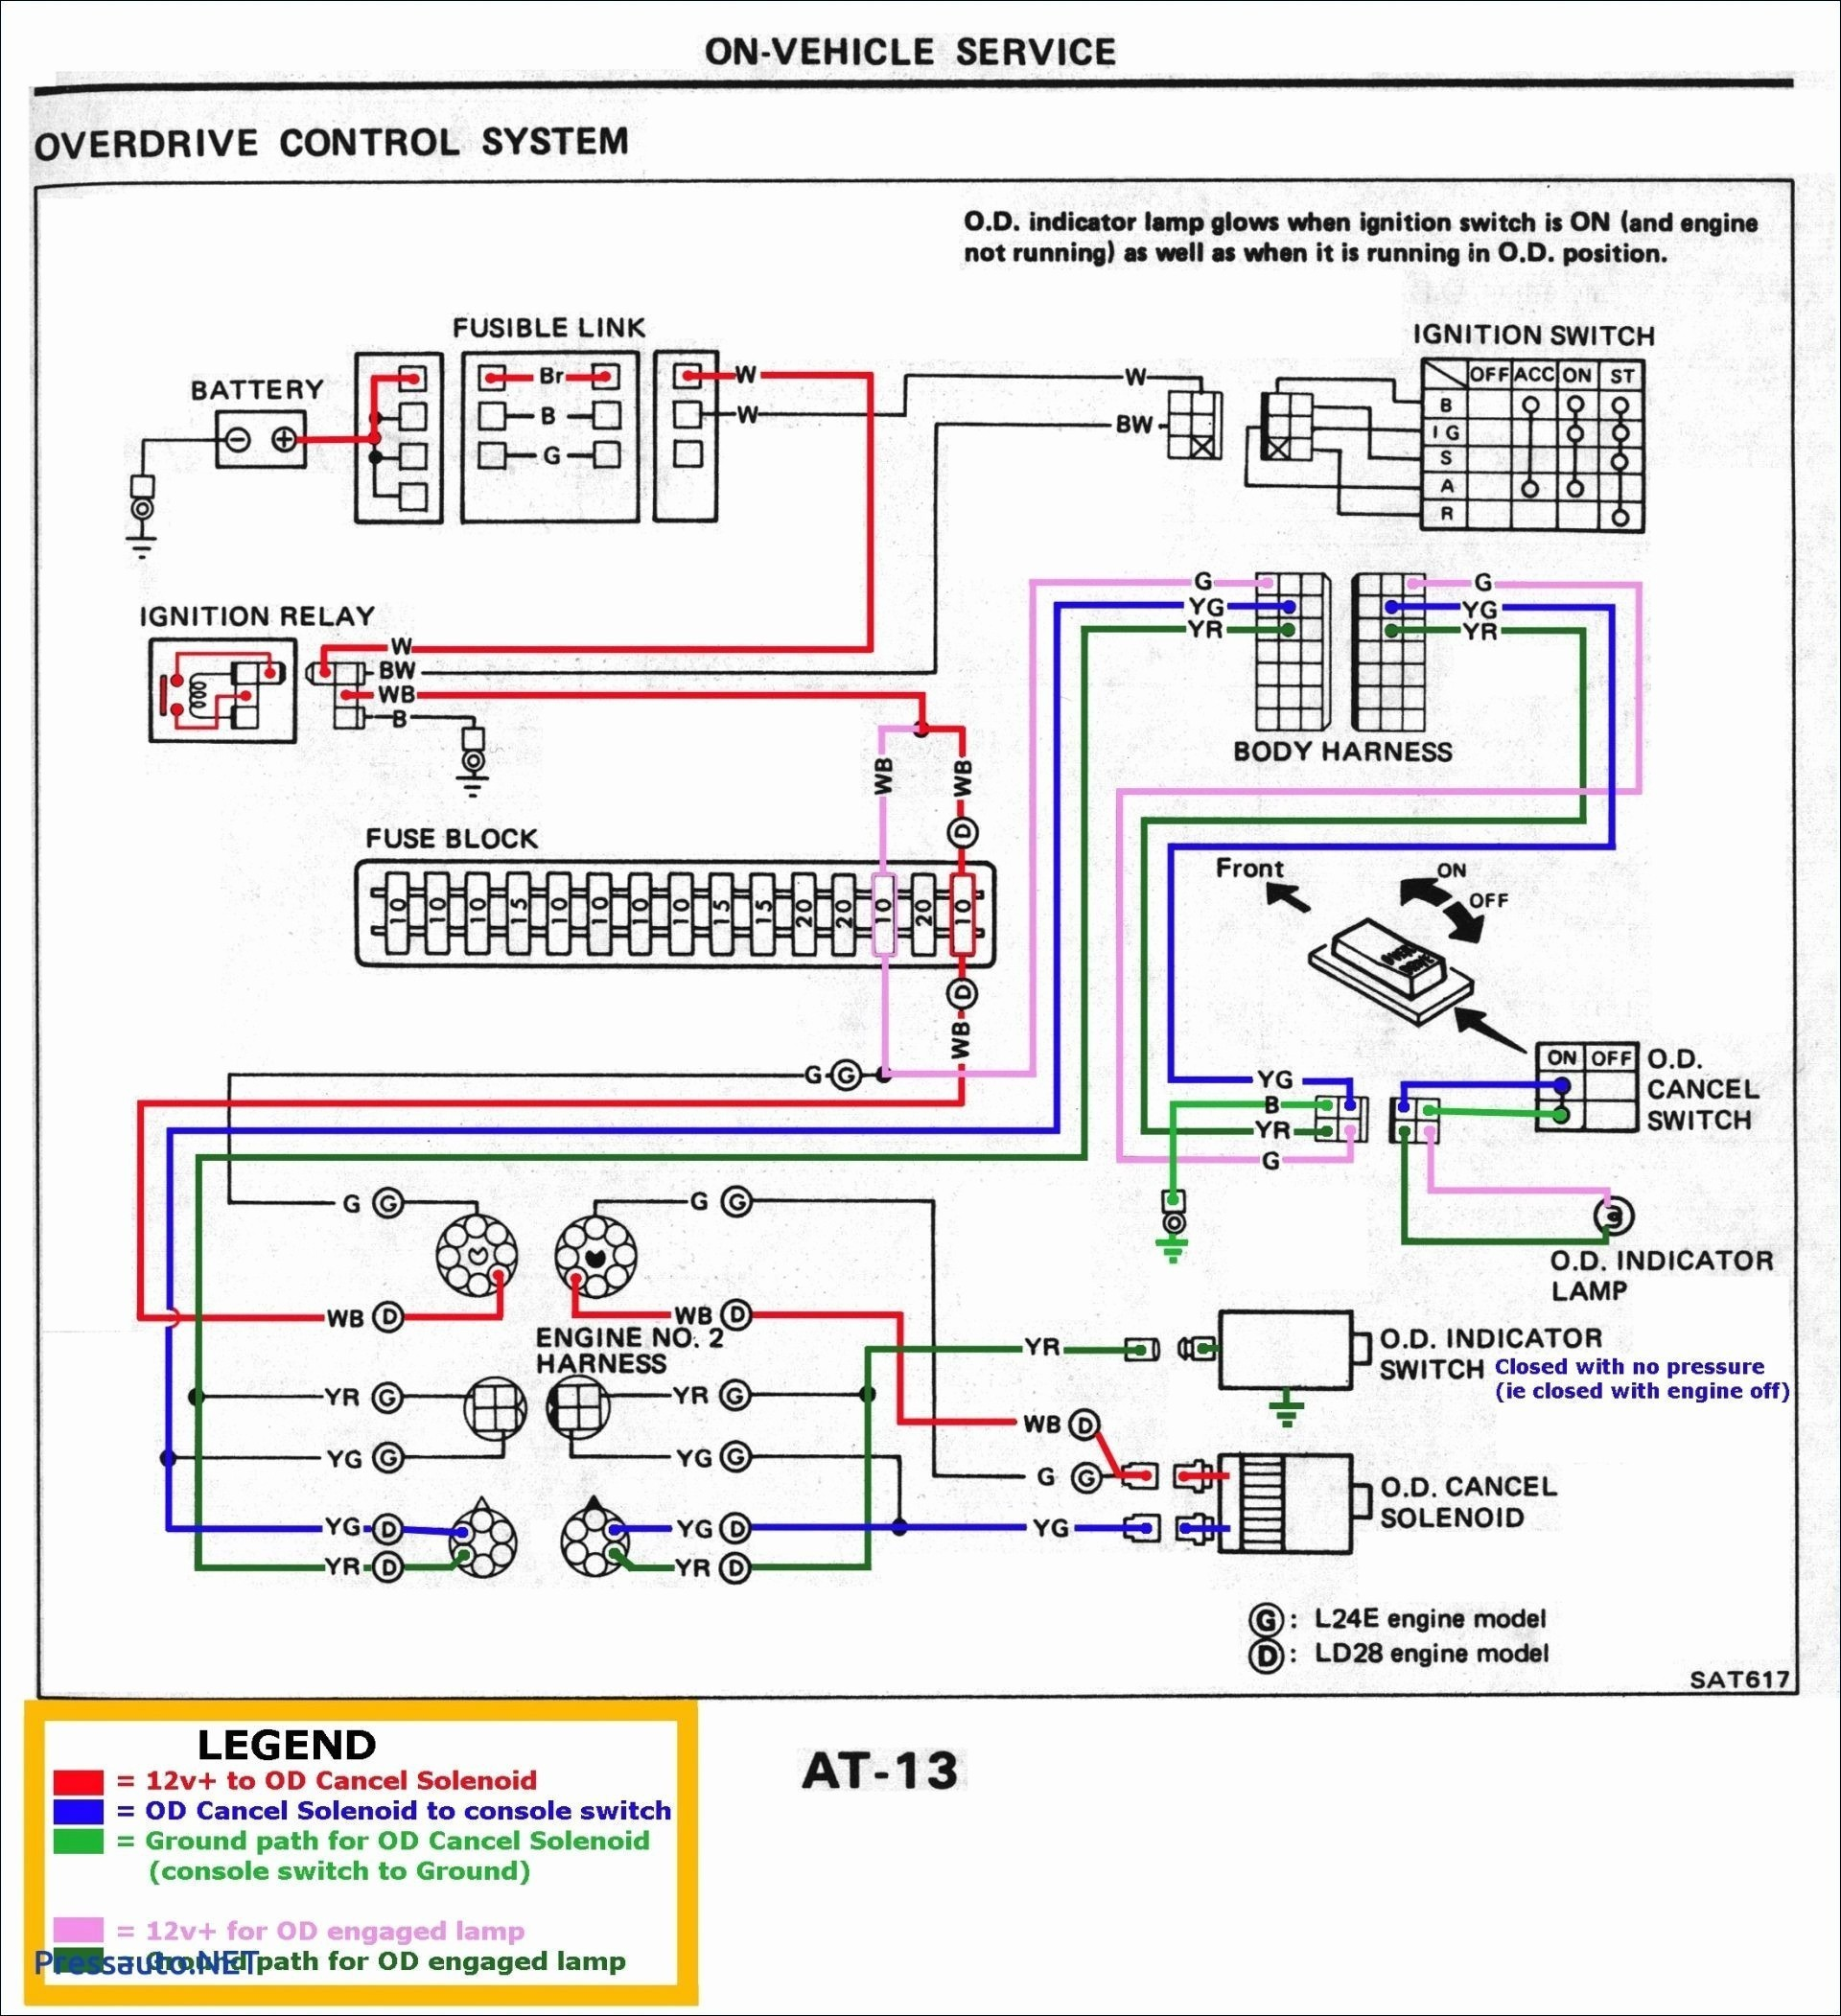 Suburban Rv Furnace Wiring Diagram Suburban Rv Furnace Sf 35f Wiring Diagram Wiring Schematics Diagram